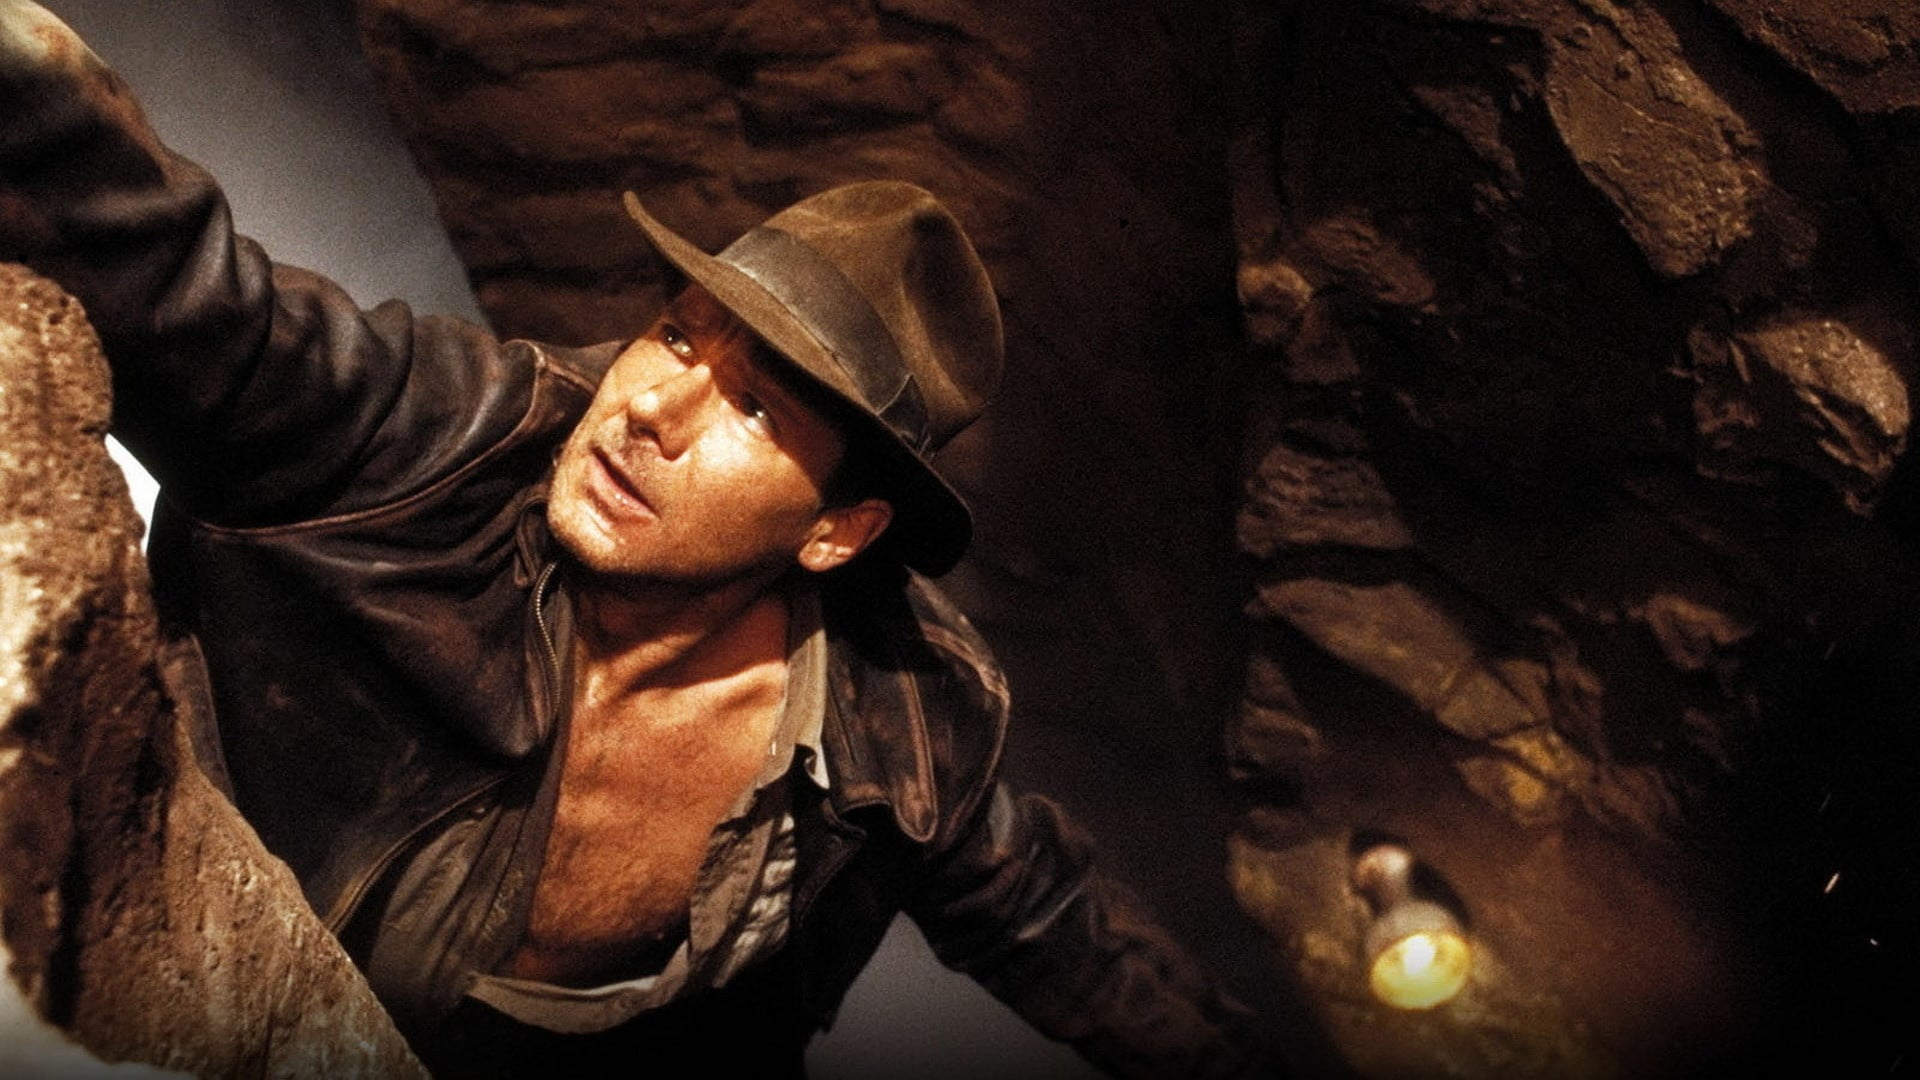 The Indiana Jones movies have been Disney movies for a while